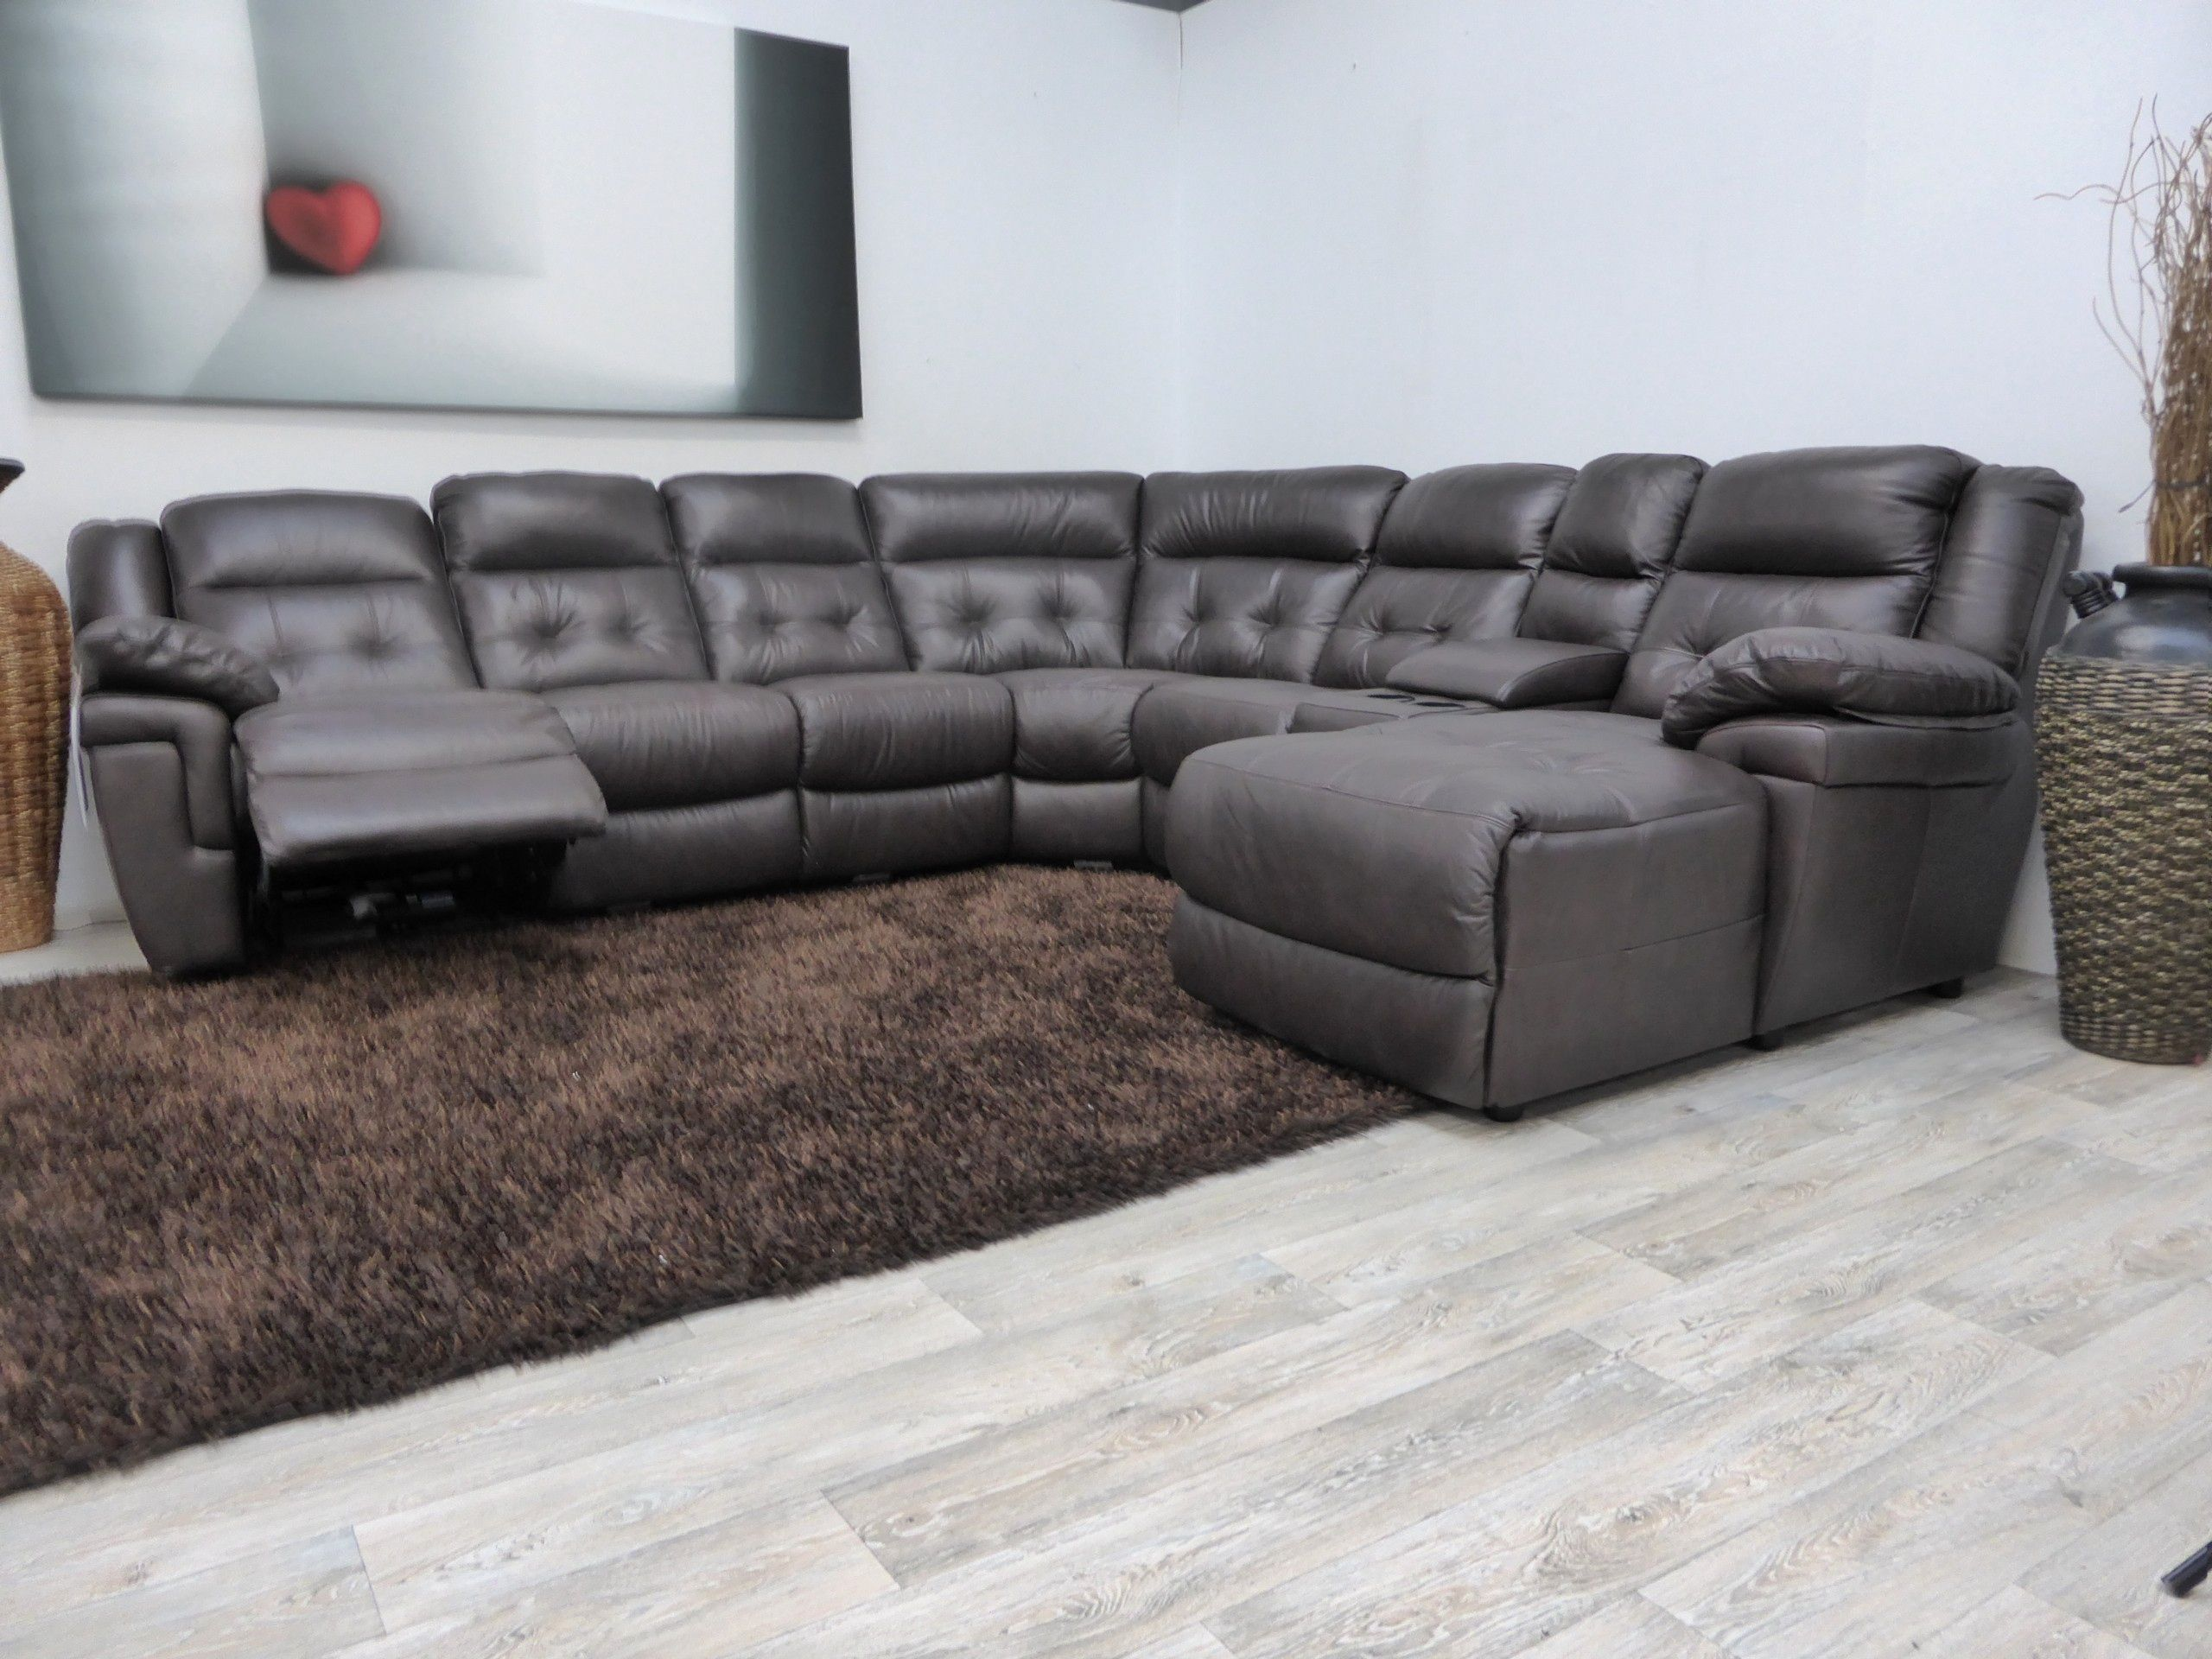 Luxury Grey Sofa Modern Graphics Sofas Marvelous Gray Couch Grey Tufted Sofa M Comfortable Sectional Sofa Sectional Sofa With Chaise Sofa Inspiration